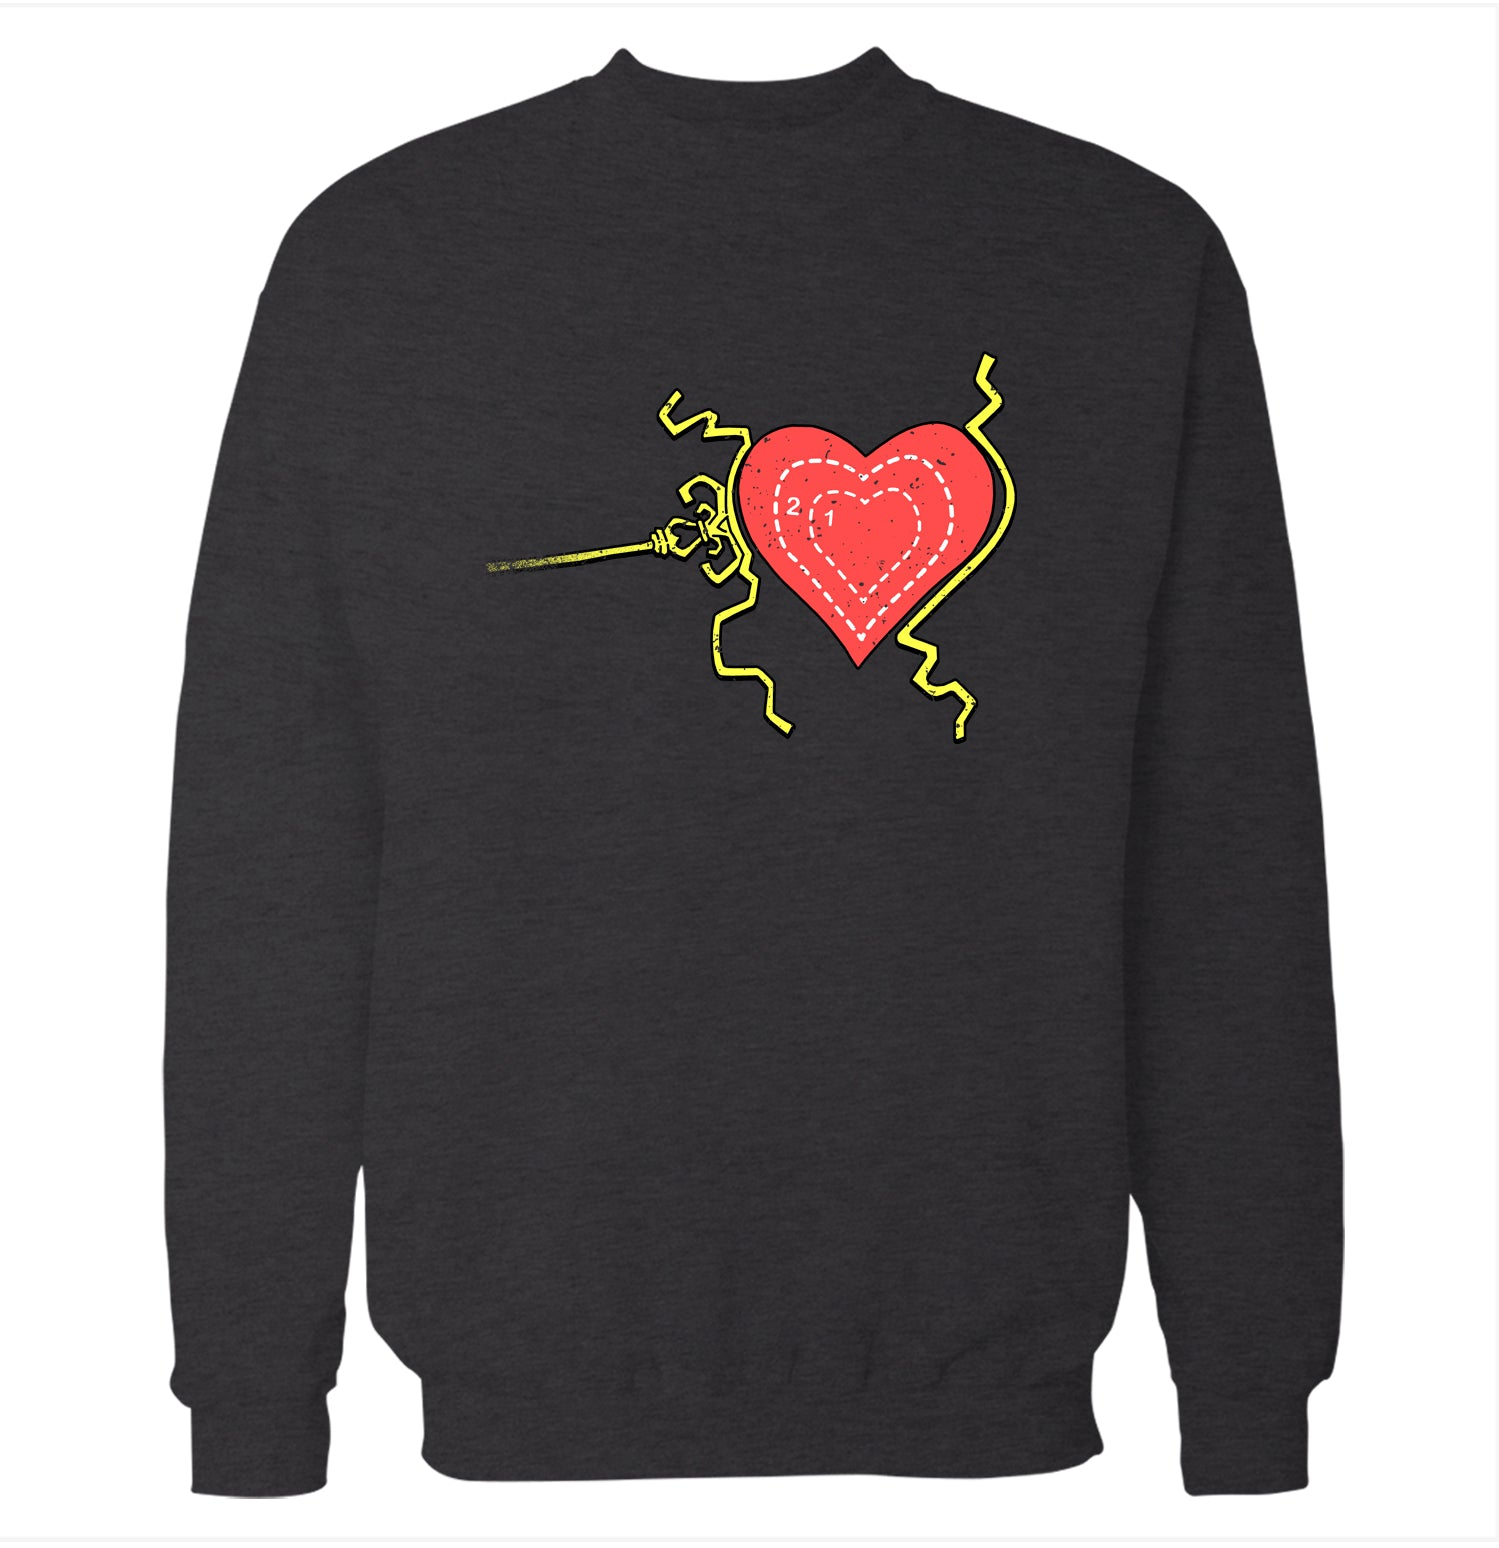 Grinch Heart How The Grinch Stole Christmas Sweatshirt Fun Times